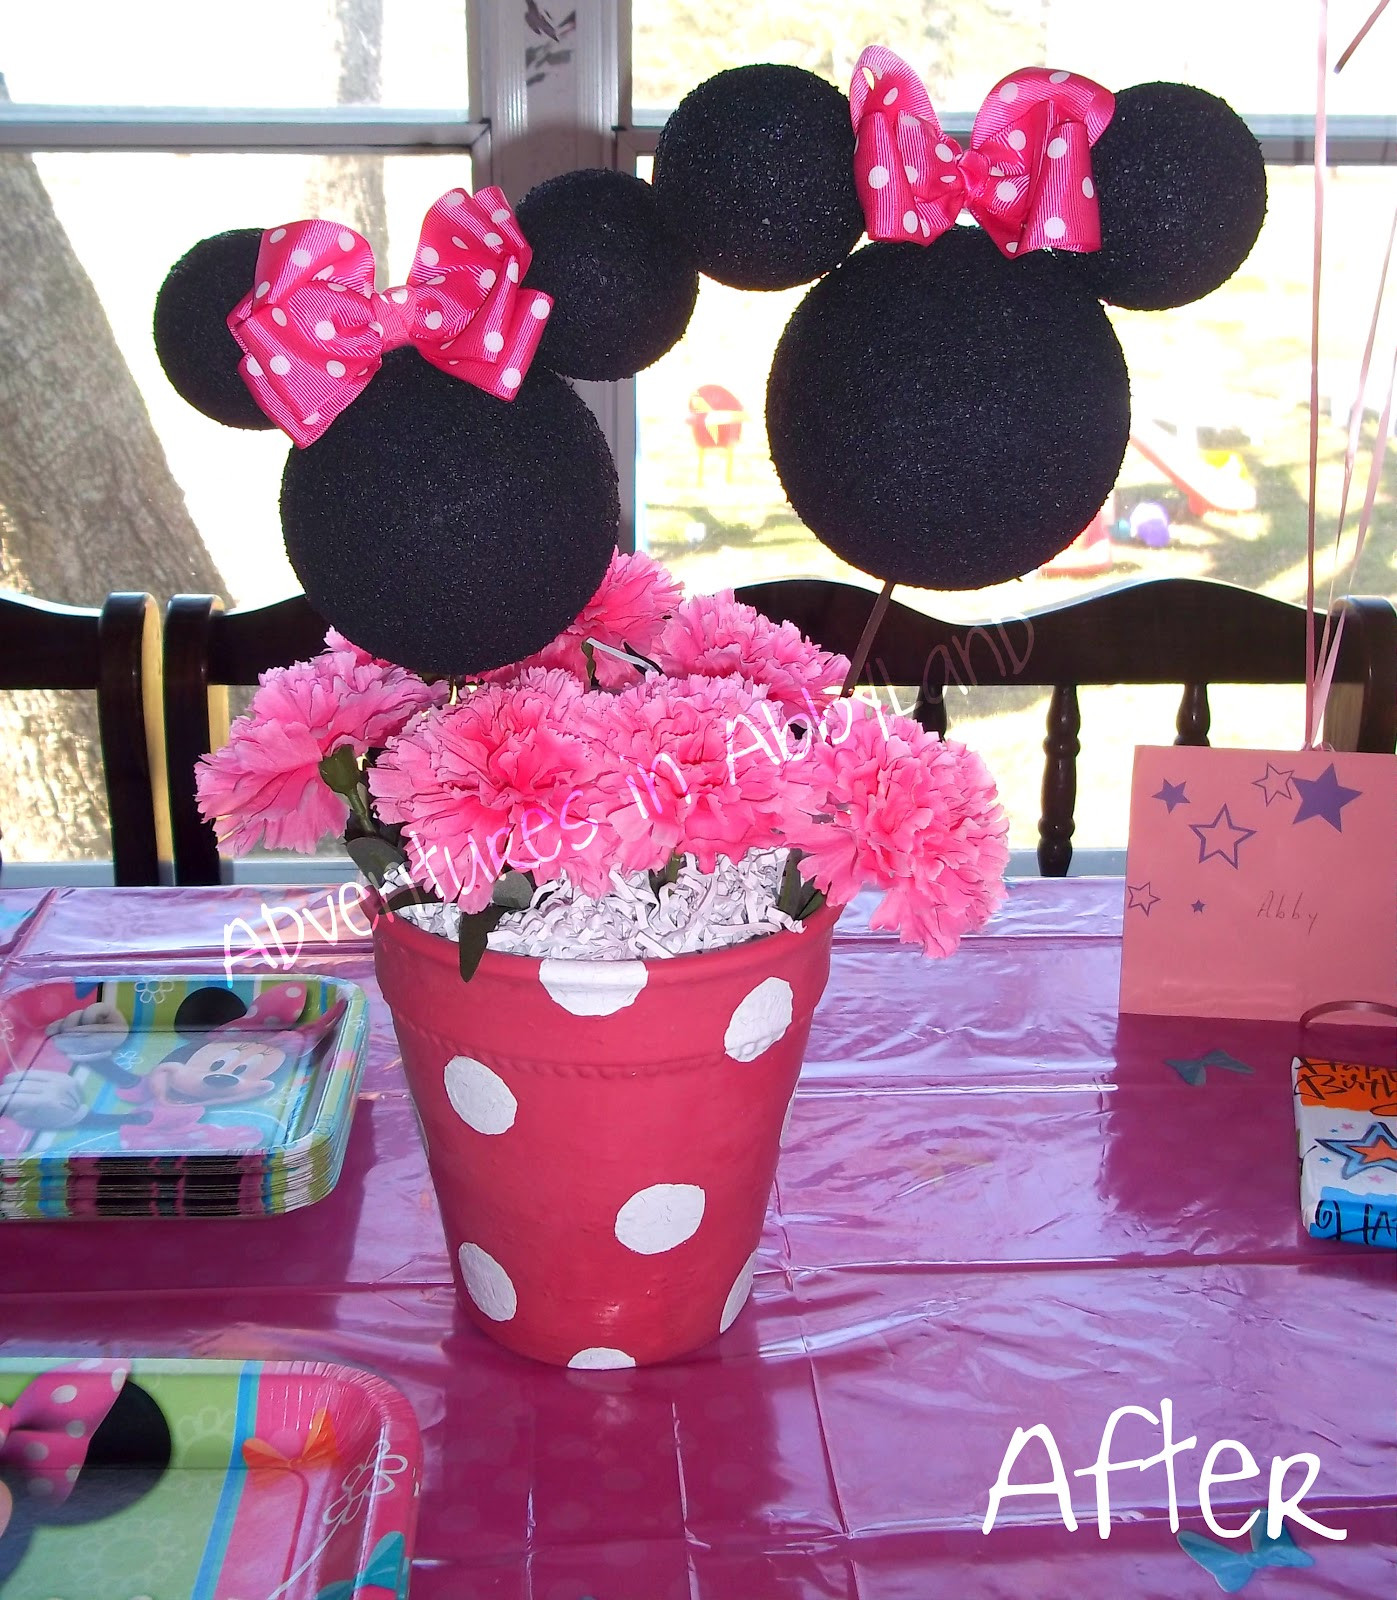 Best ideas about DIY Minnie Mouse Decorations . Save or Pin DIY Minnie Mouse Flowerpot Centerpiece Now.